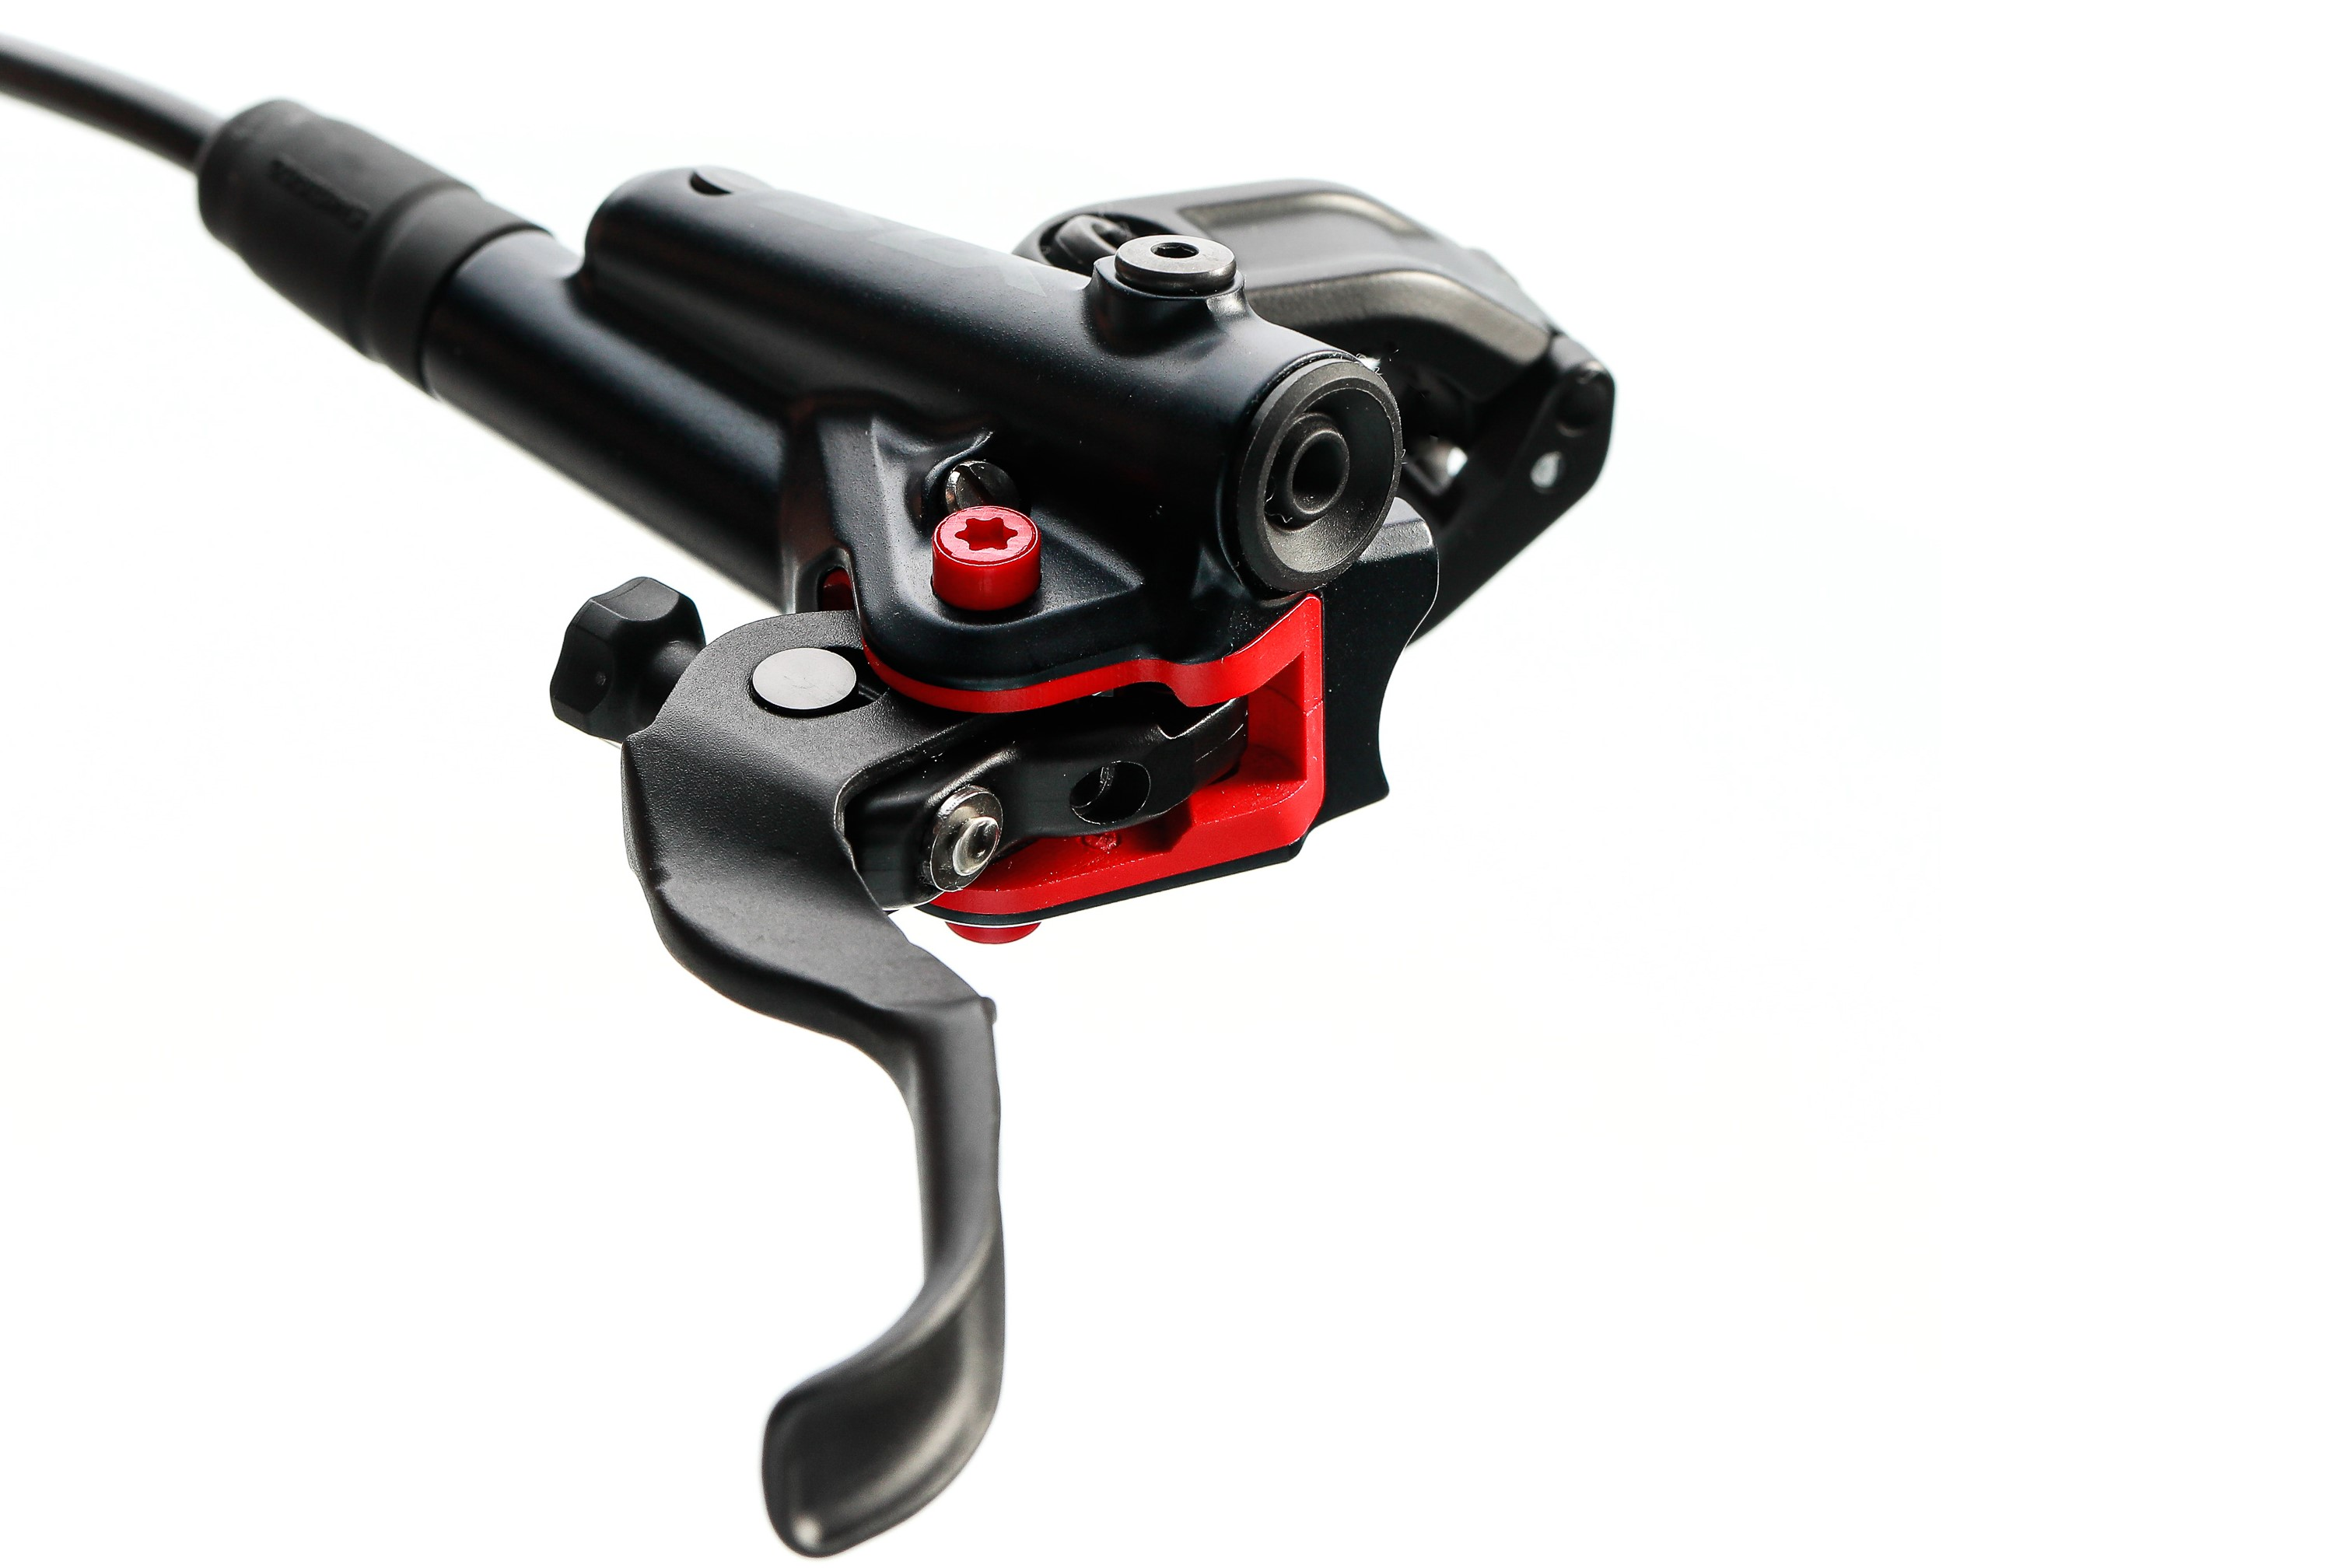 Lobster kit is a Russian upgrade for Shimano brakes